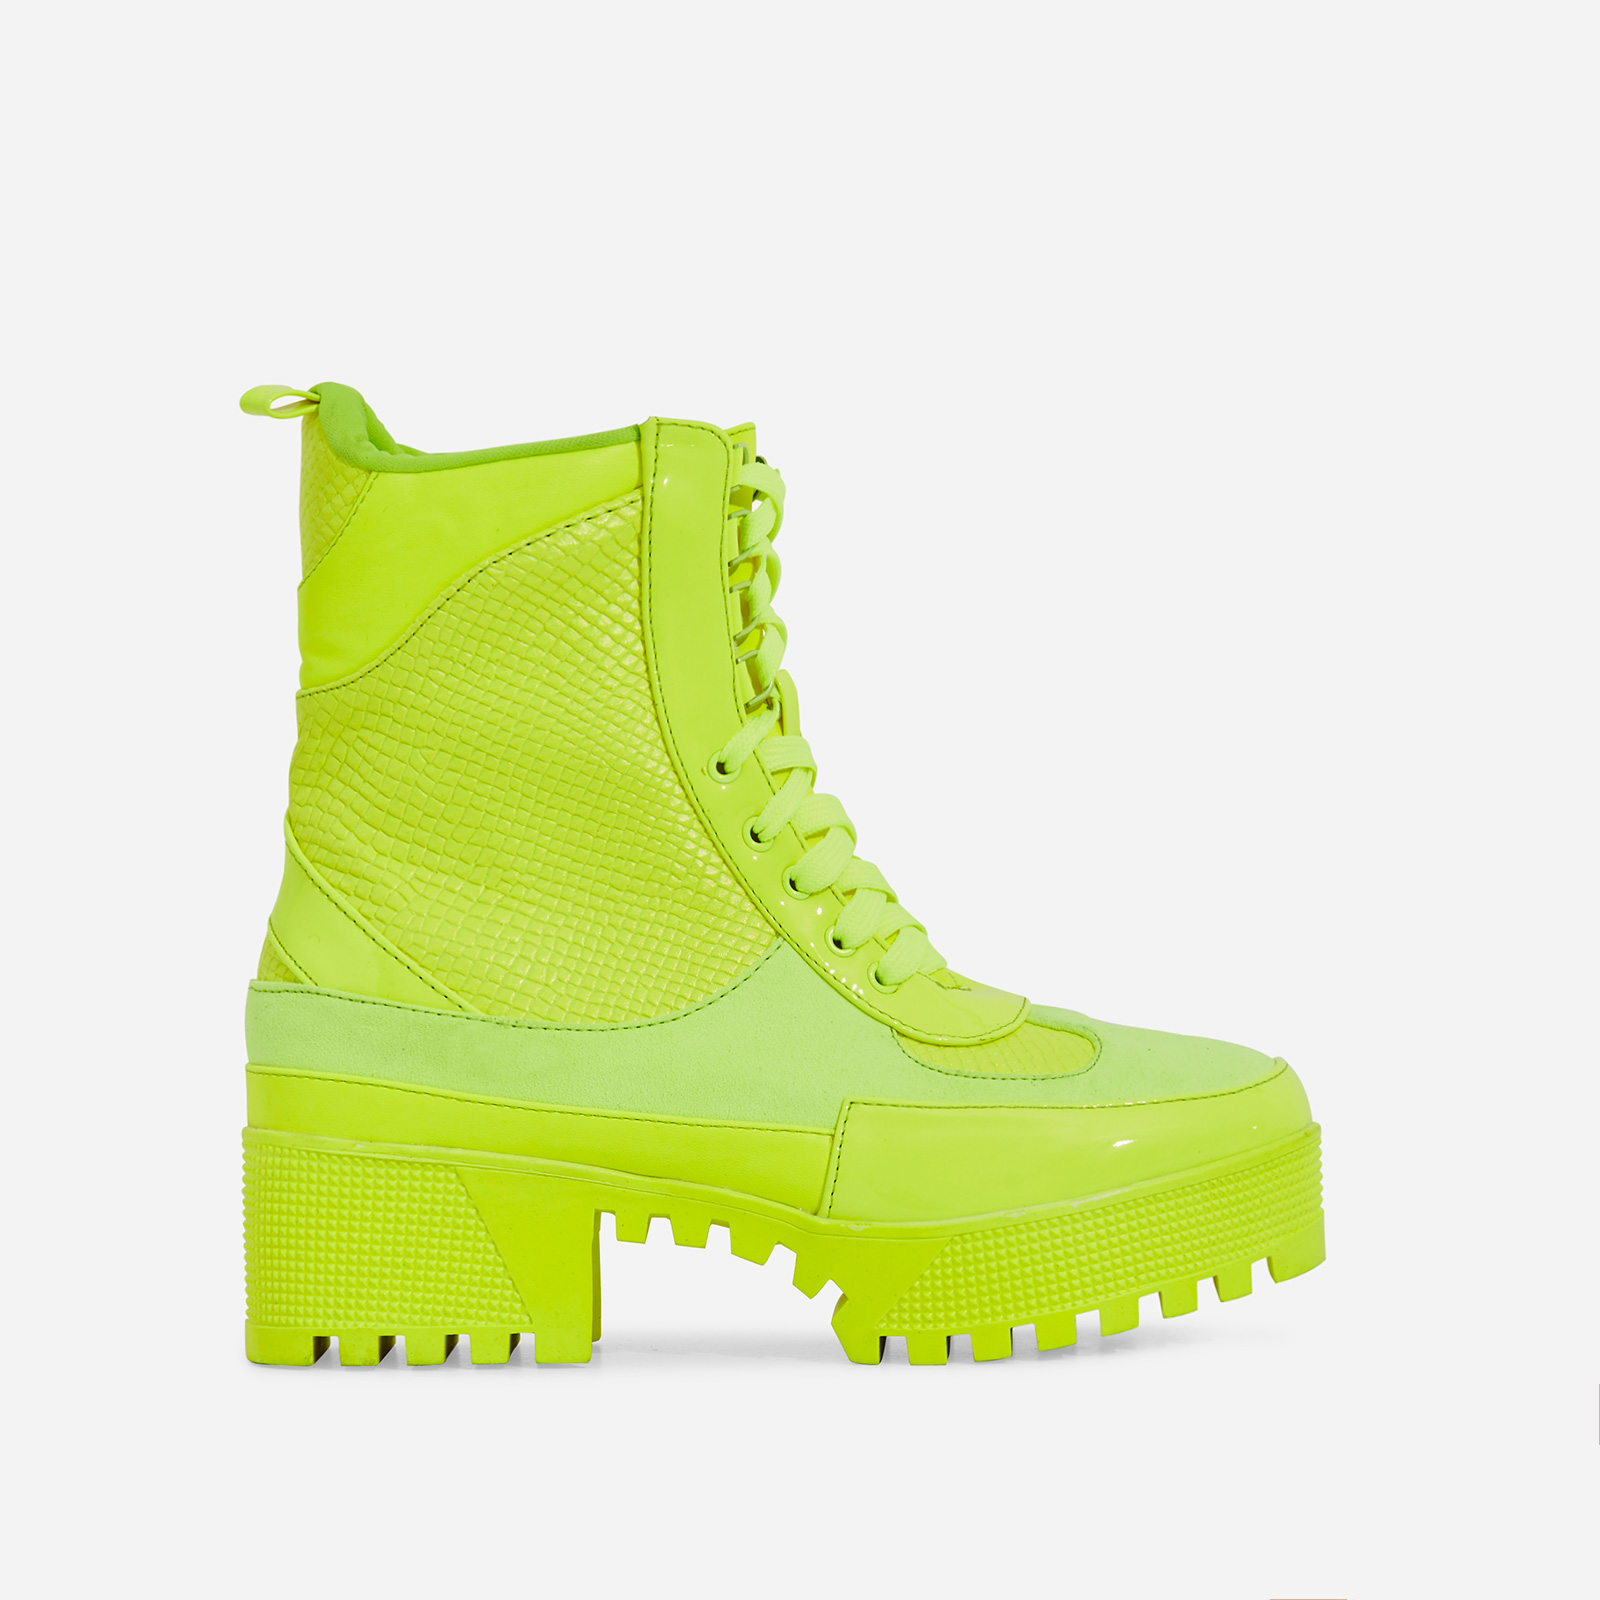 Commander Chunky Sole Lace Up Ankle Boot In Neon Lime Green Snake Print